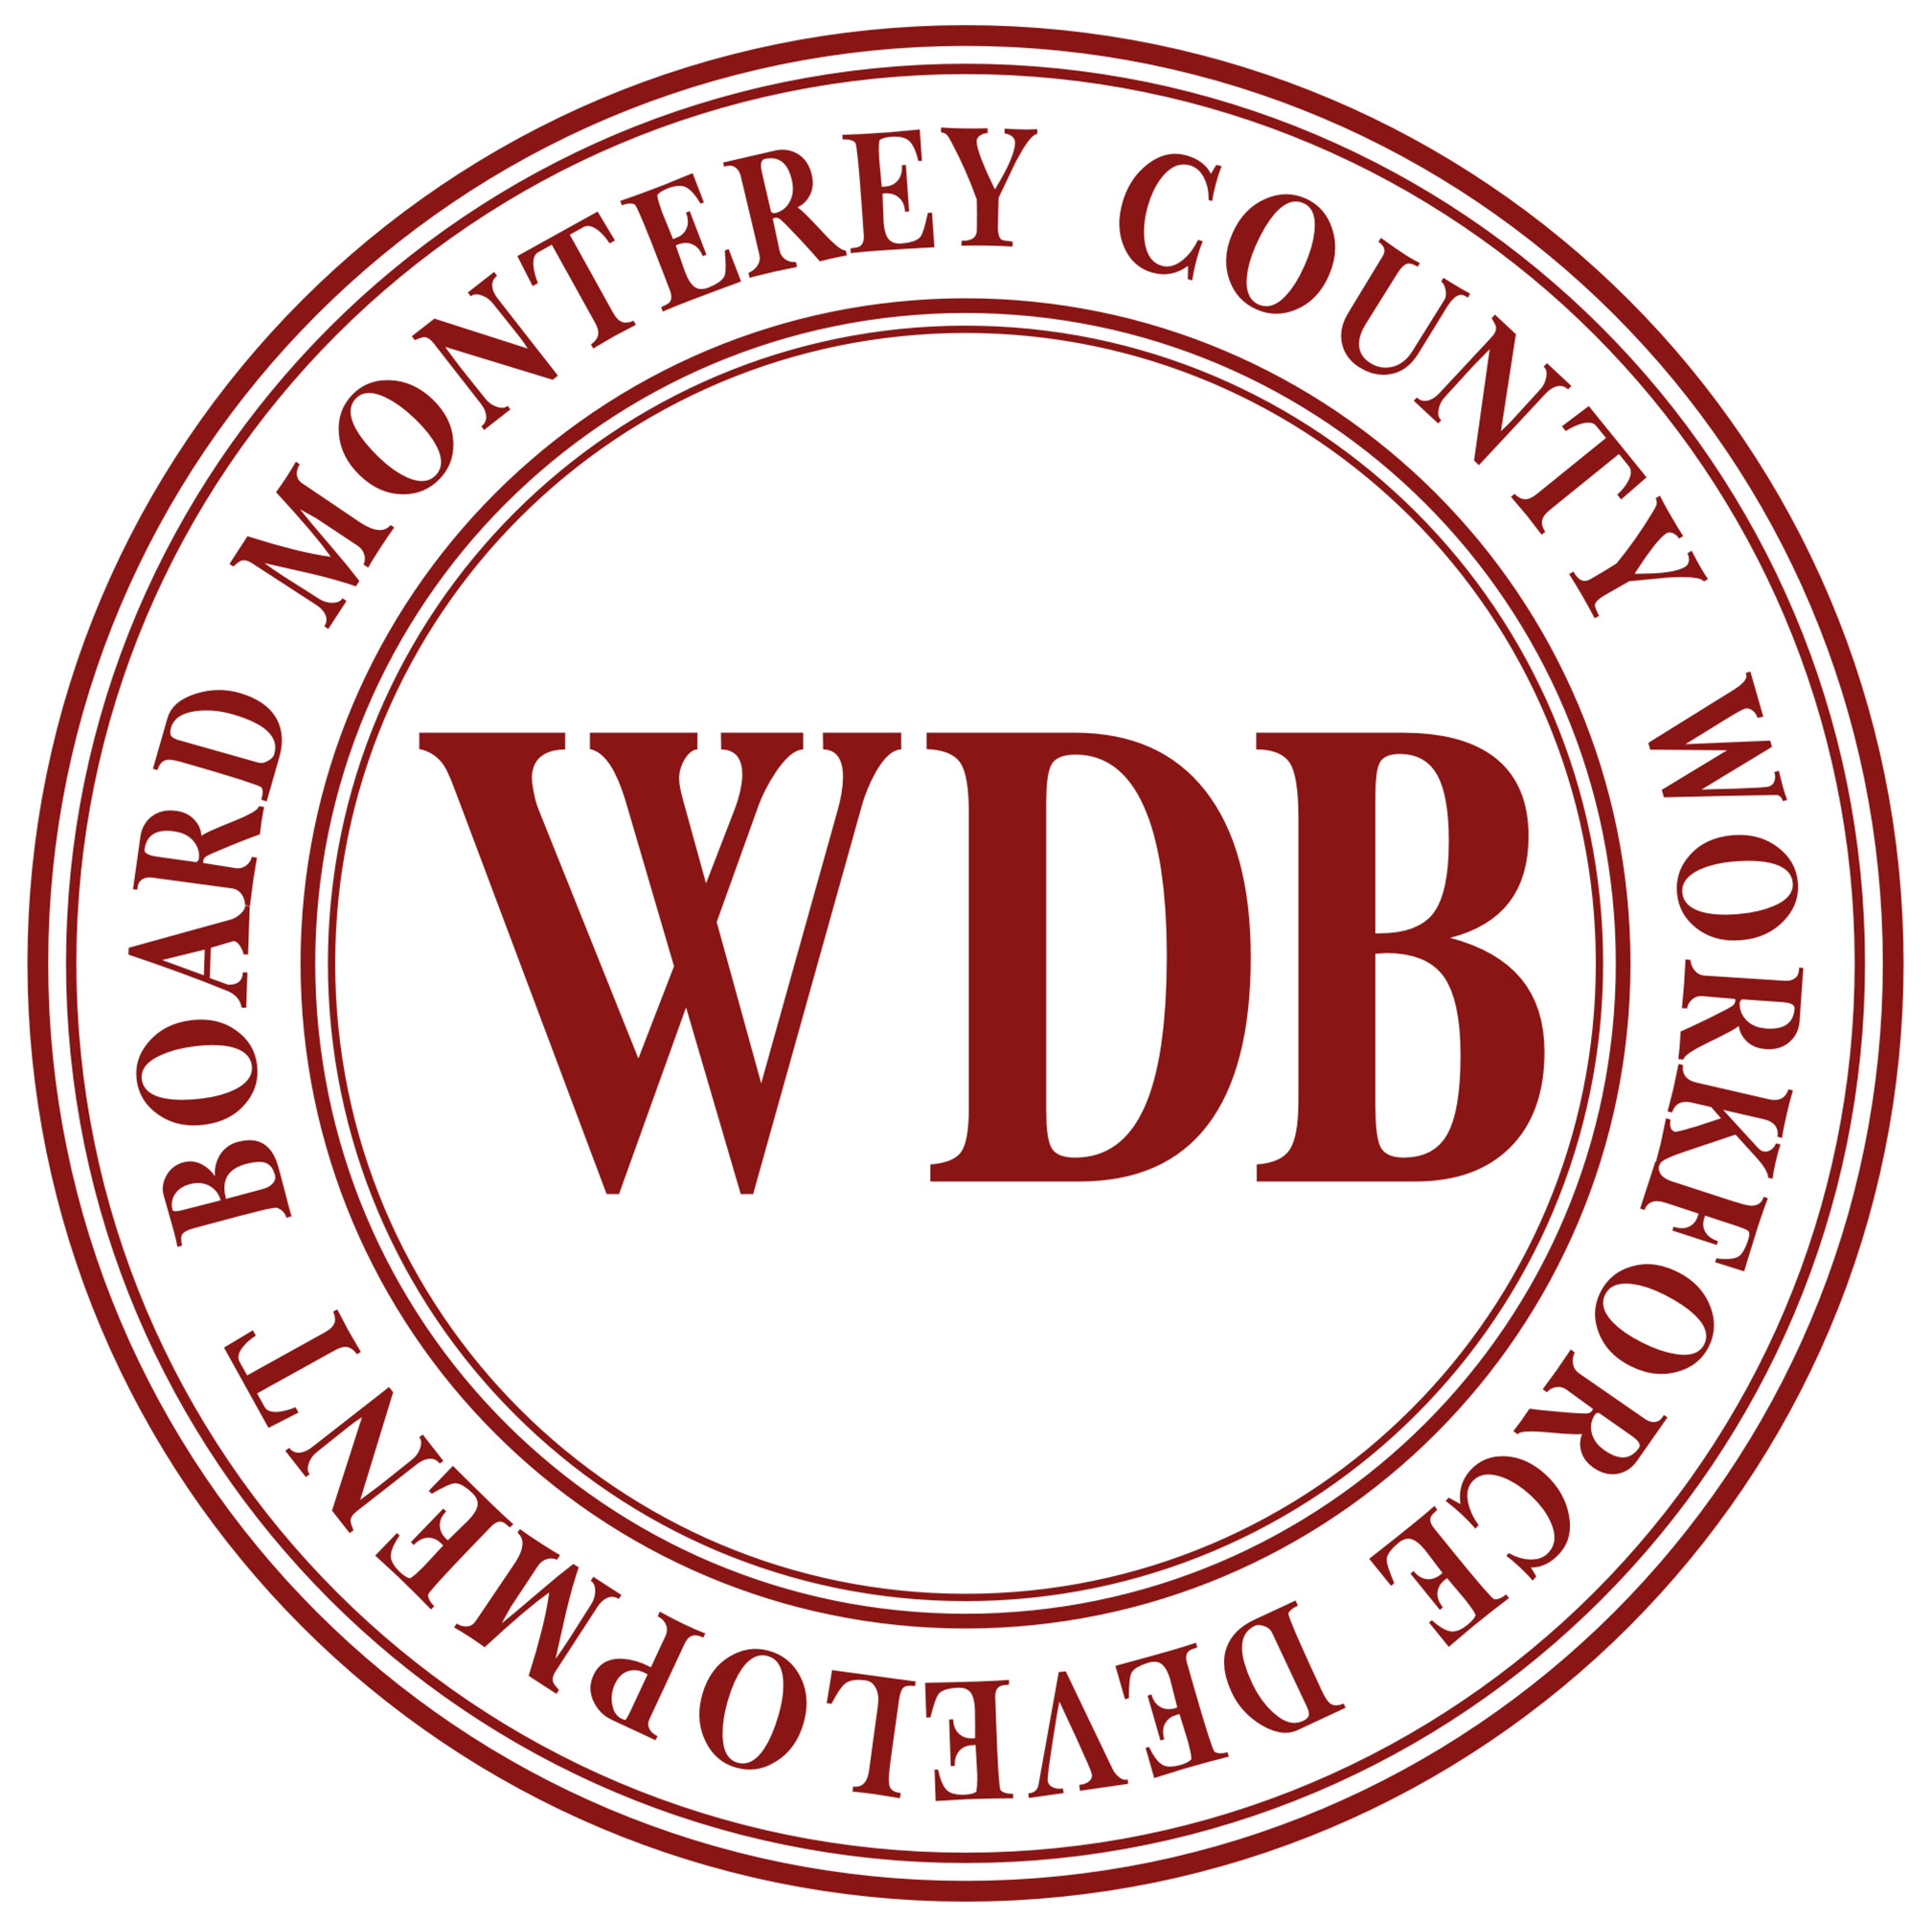 Monterey County Workforce Development Board